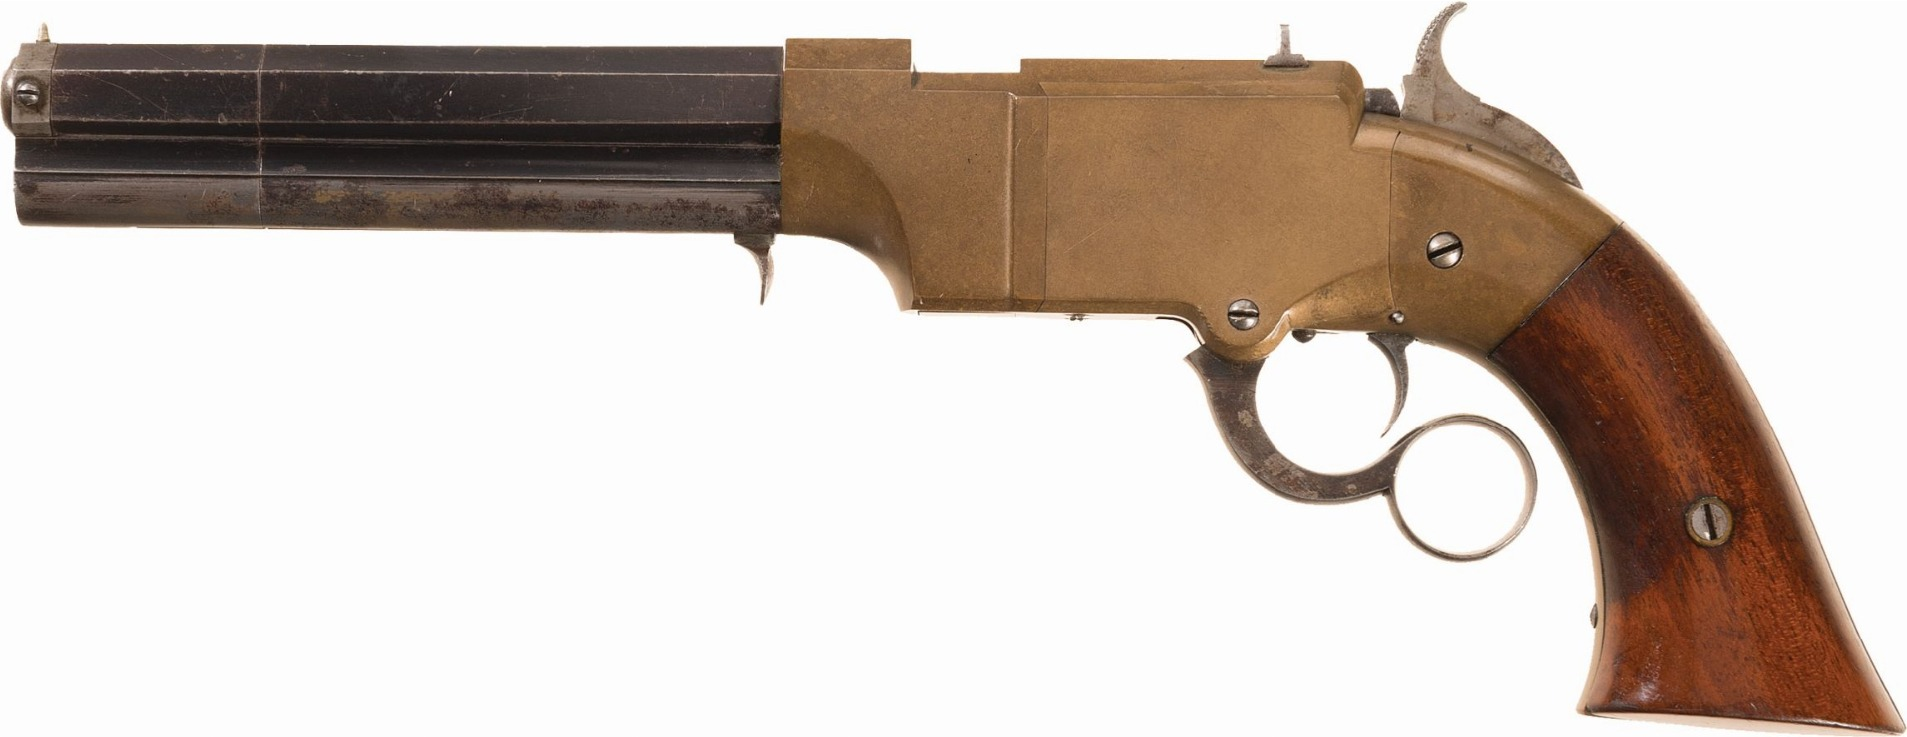 New Haven Arms Company lever action pistol